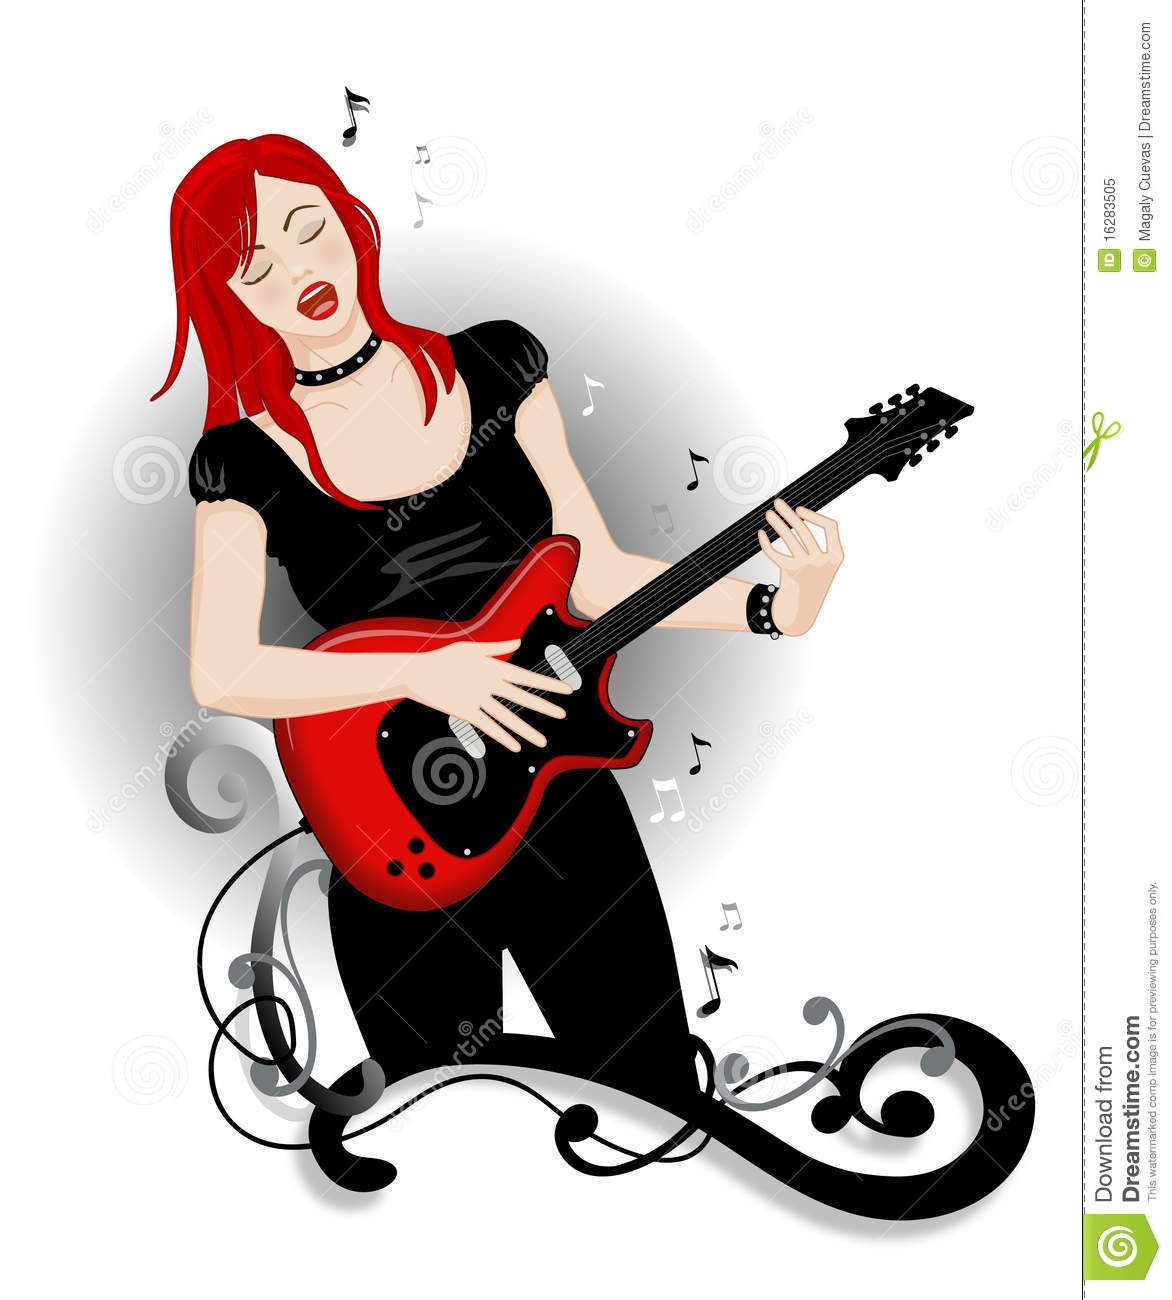 Rock chick clipart vector Rock and roll girl | Clipart Panda - Free Clipart Images vector